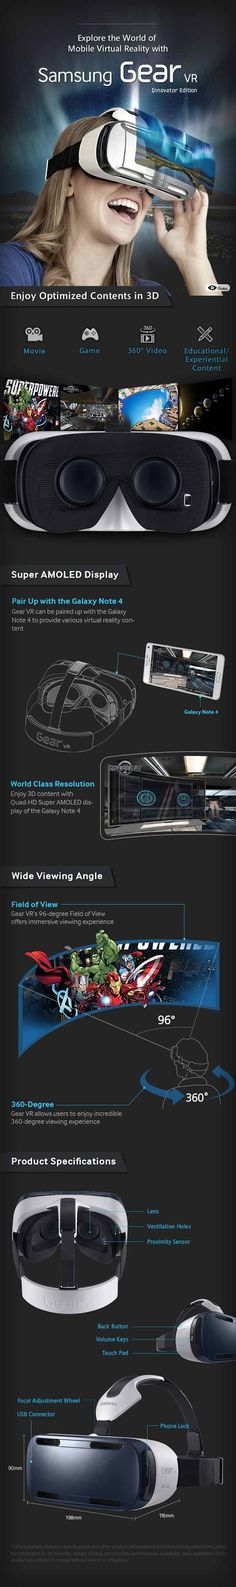 Samsung Galaxy Gear VR (Explore the world of mobile virtual reality) #gadgets #virtualreality #modernistablog